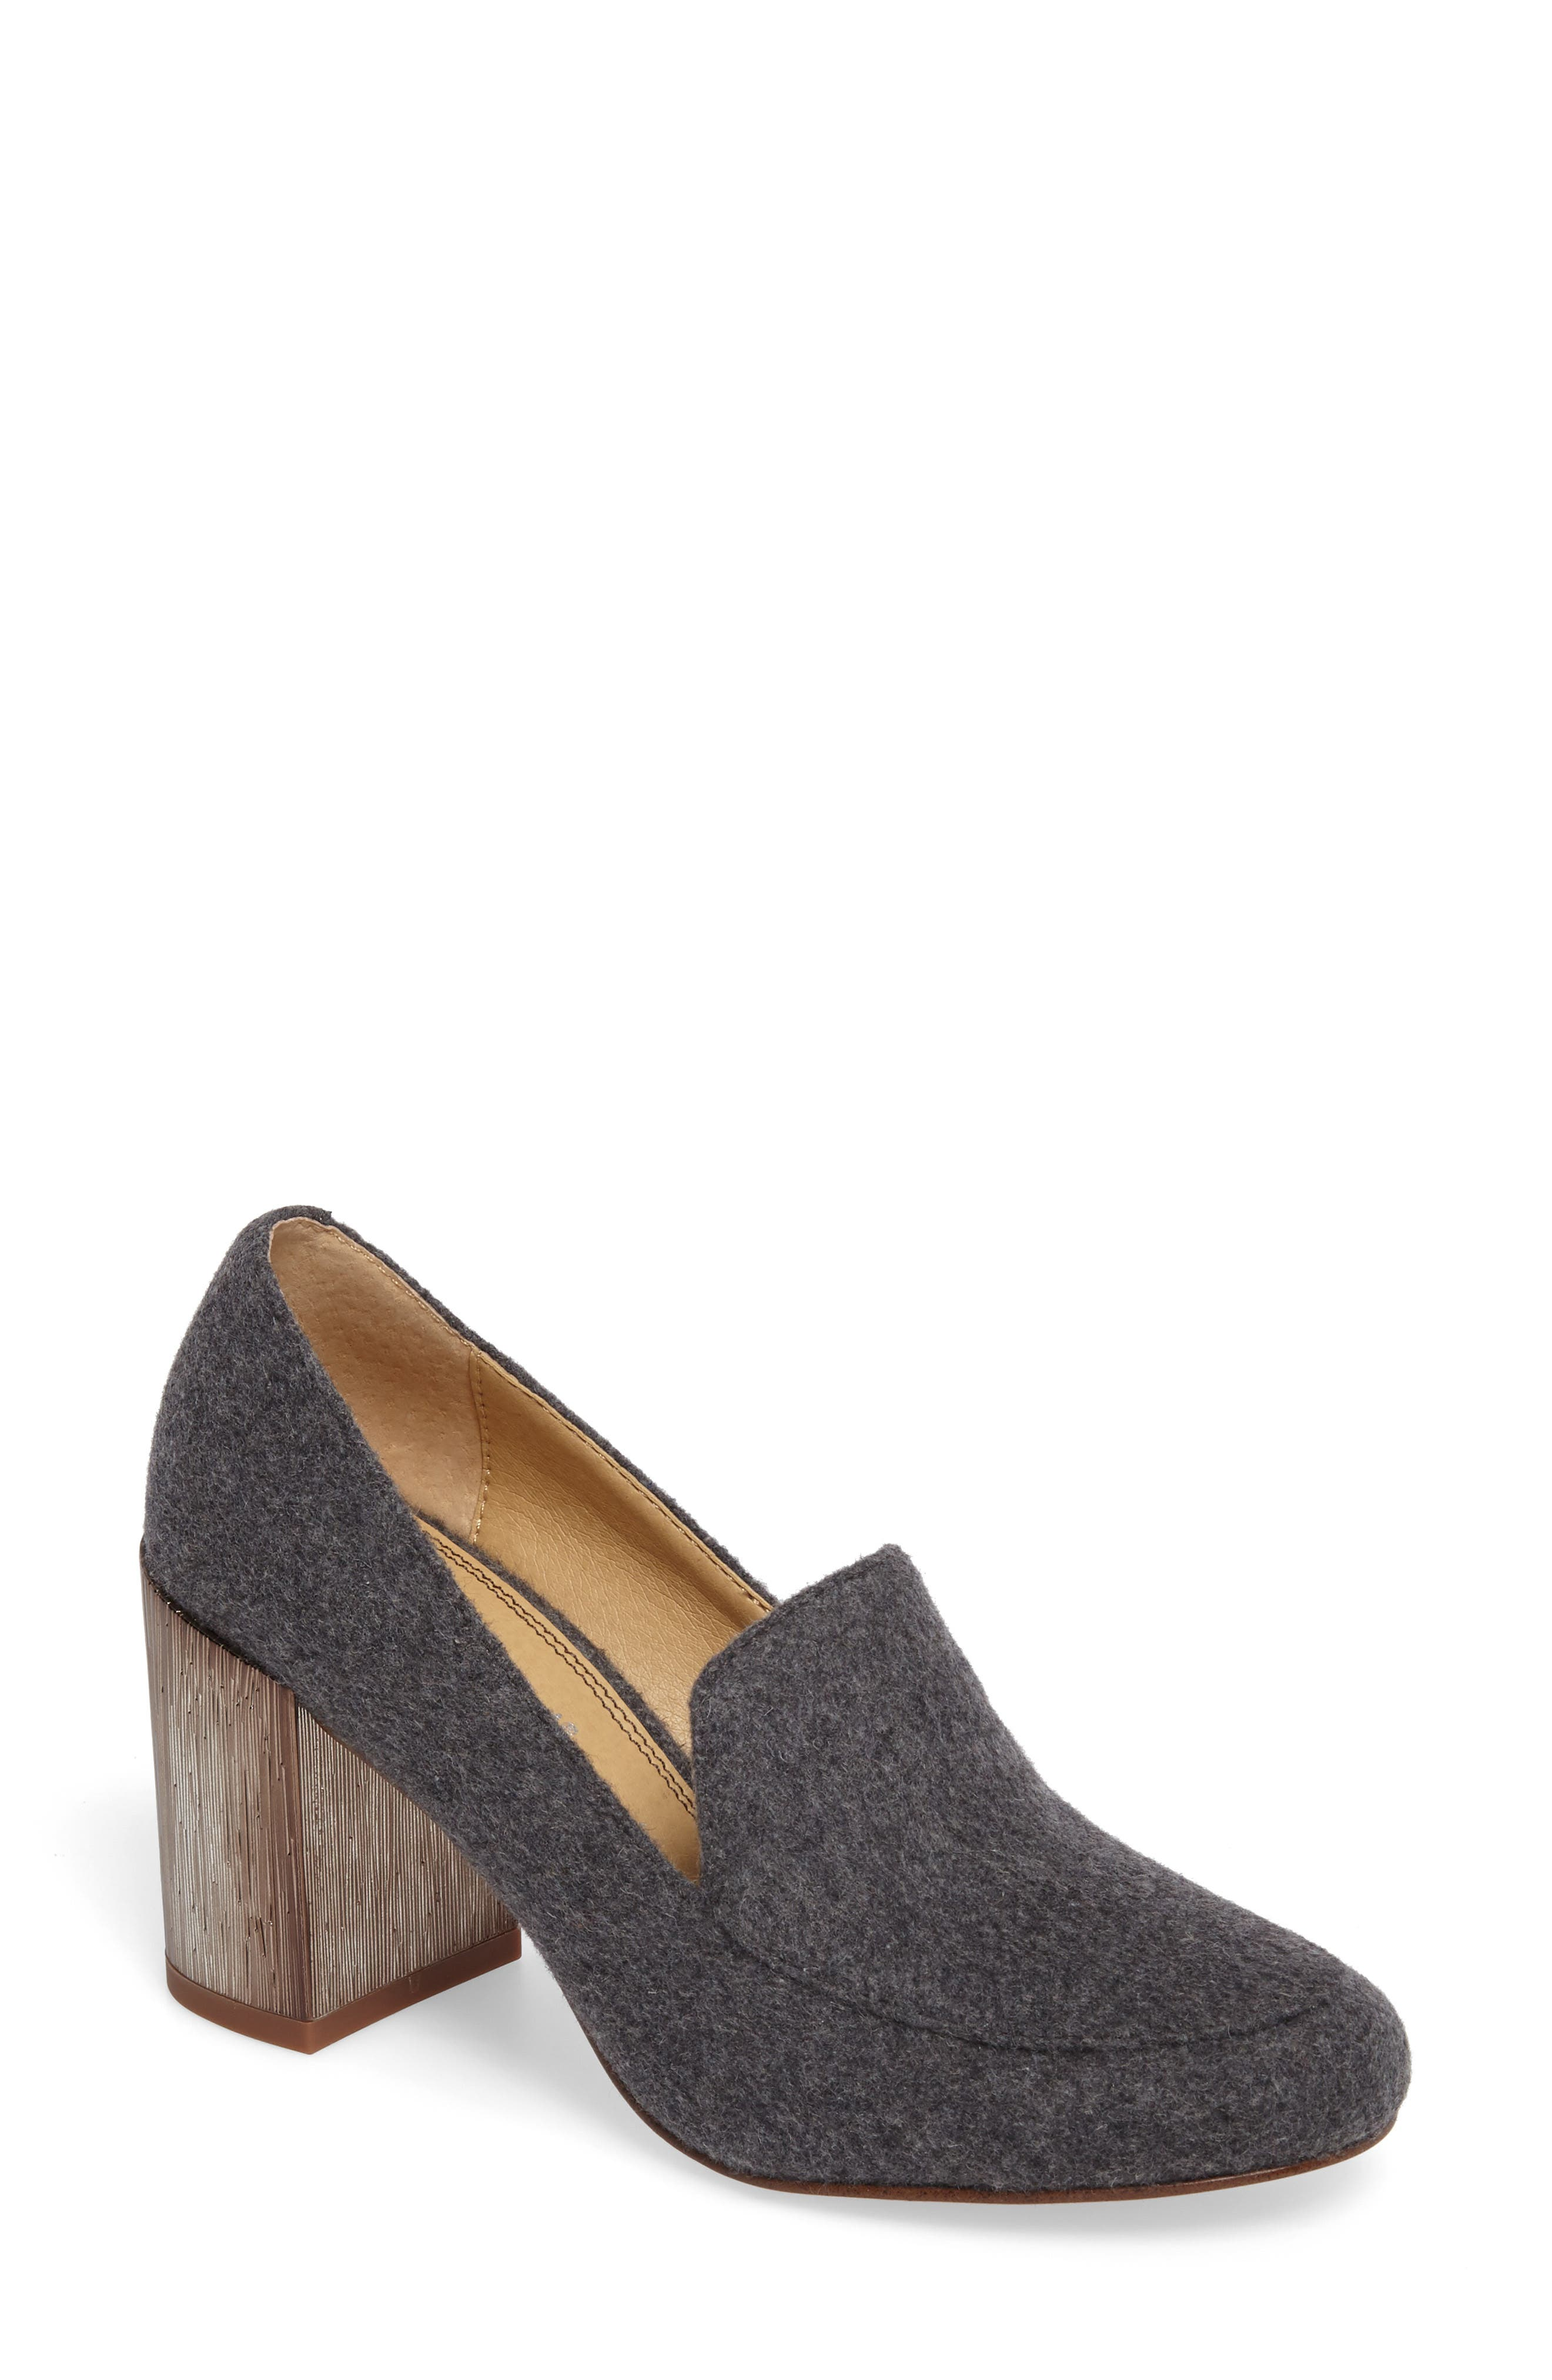 Alternate Image 1 Selected - Splendid Rosita II Loafer Pump (Women)